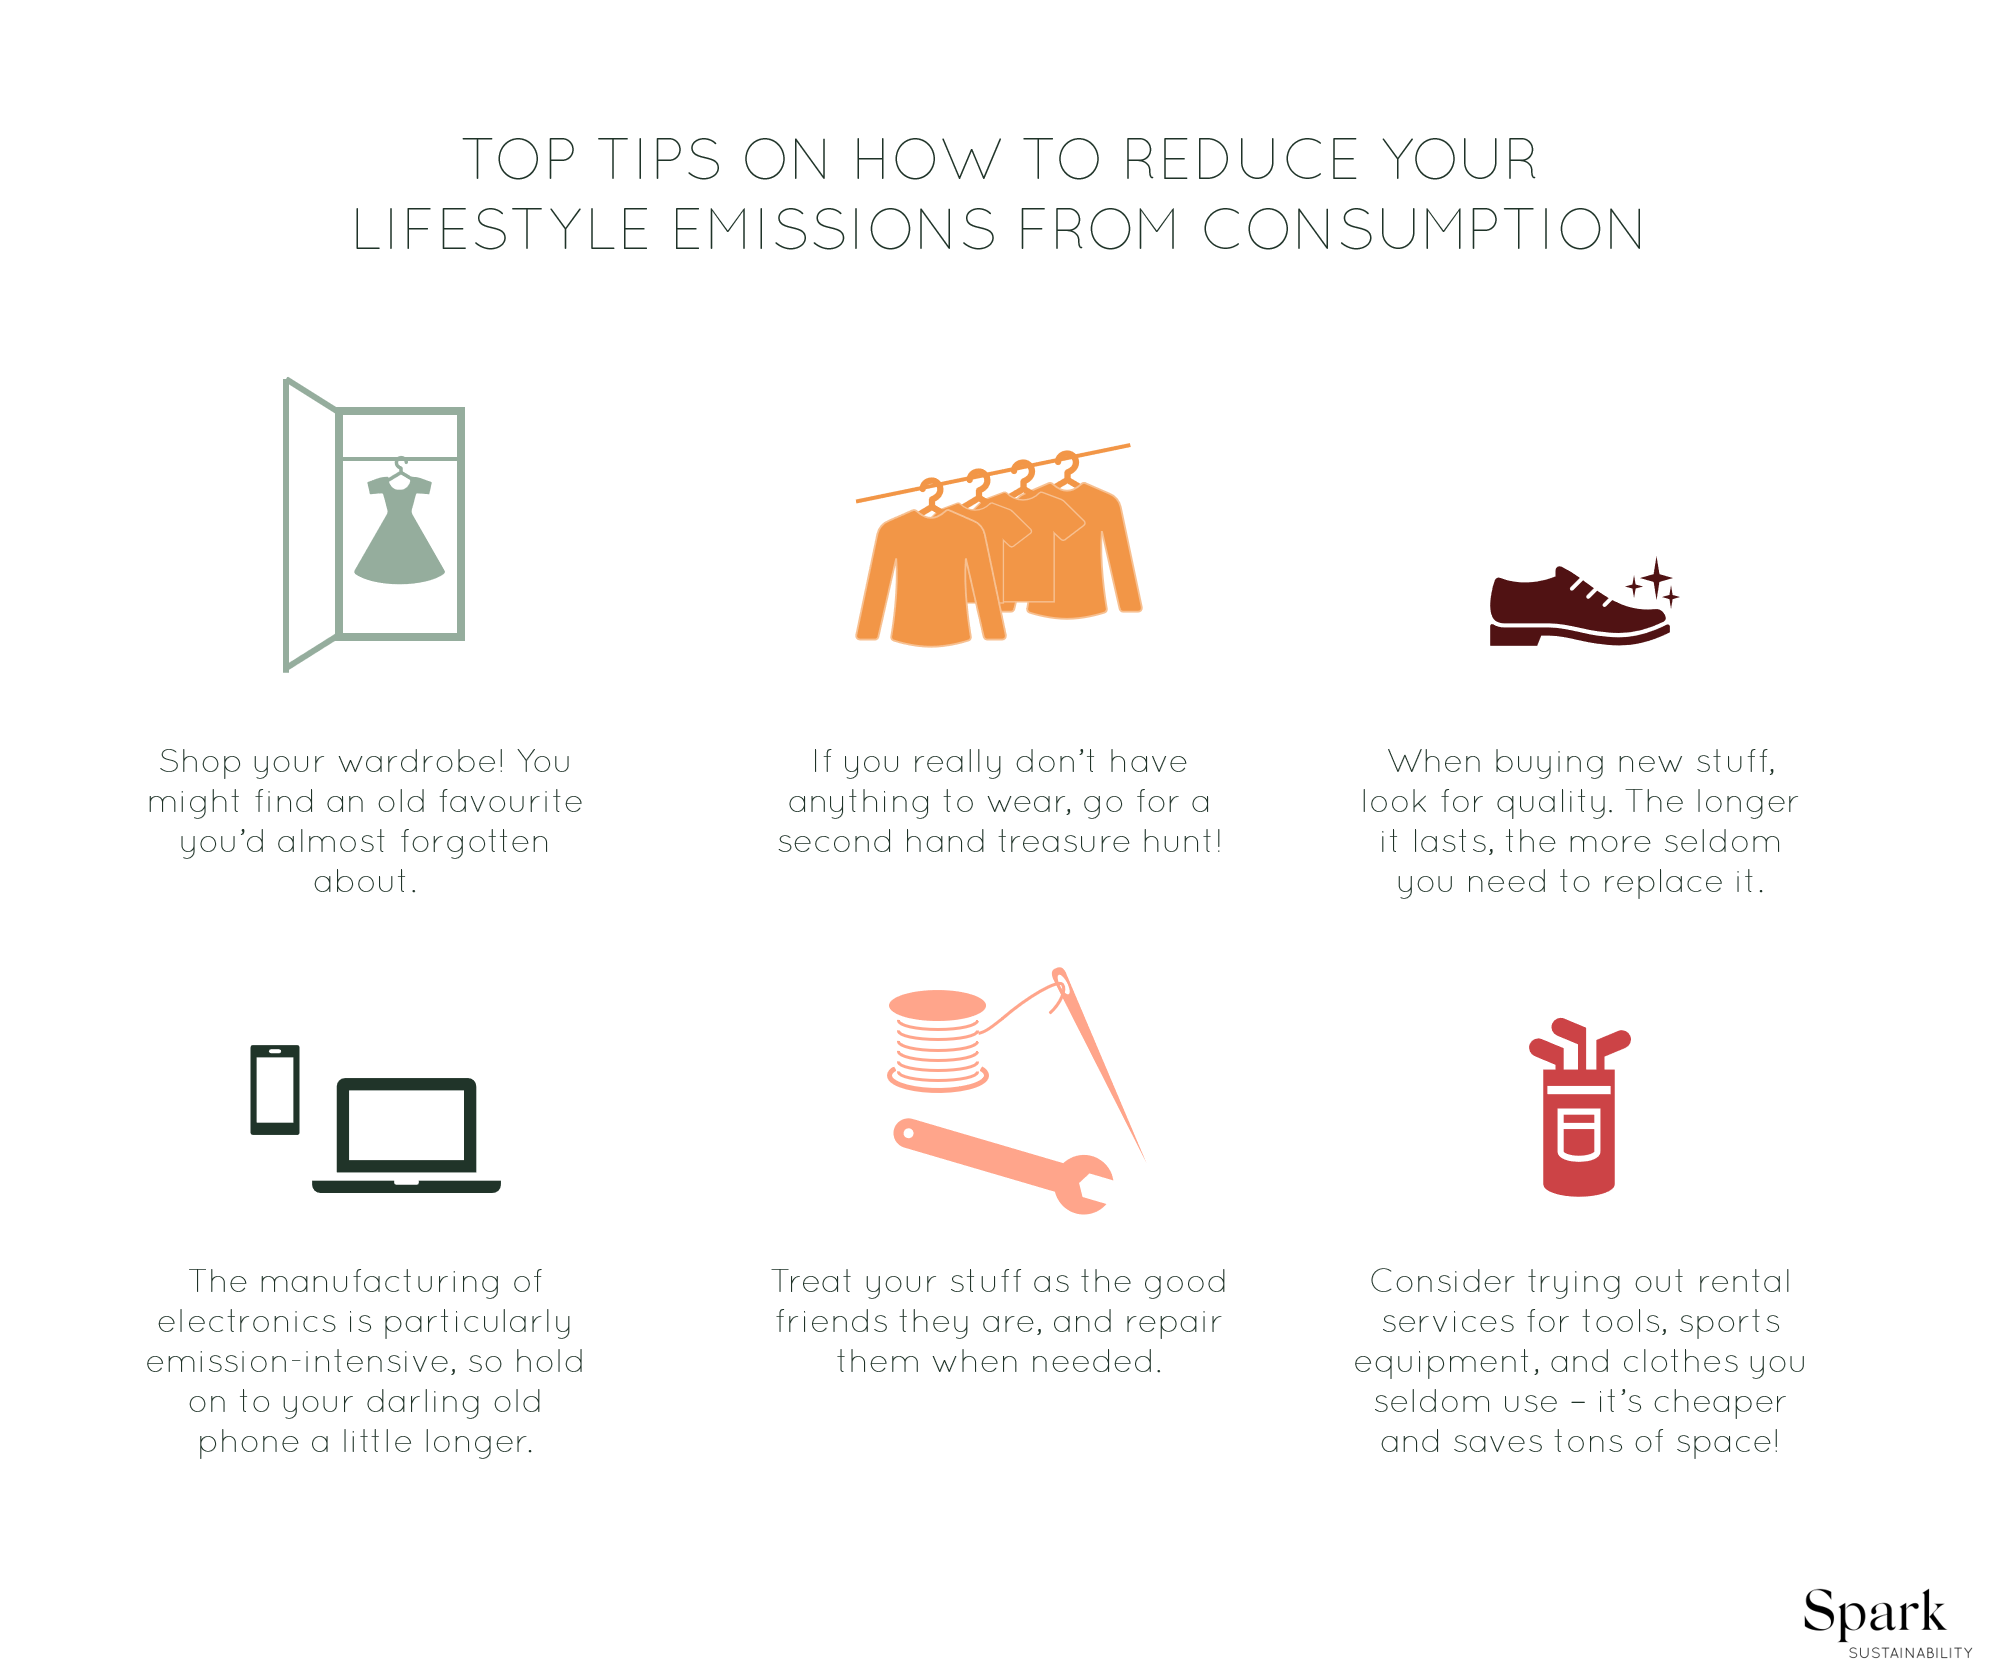 Sustainable consumption – top 6 tips on how to reduce lifestyle emissions from consumption.